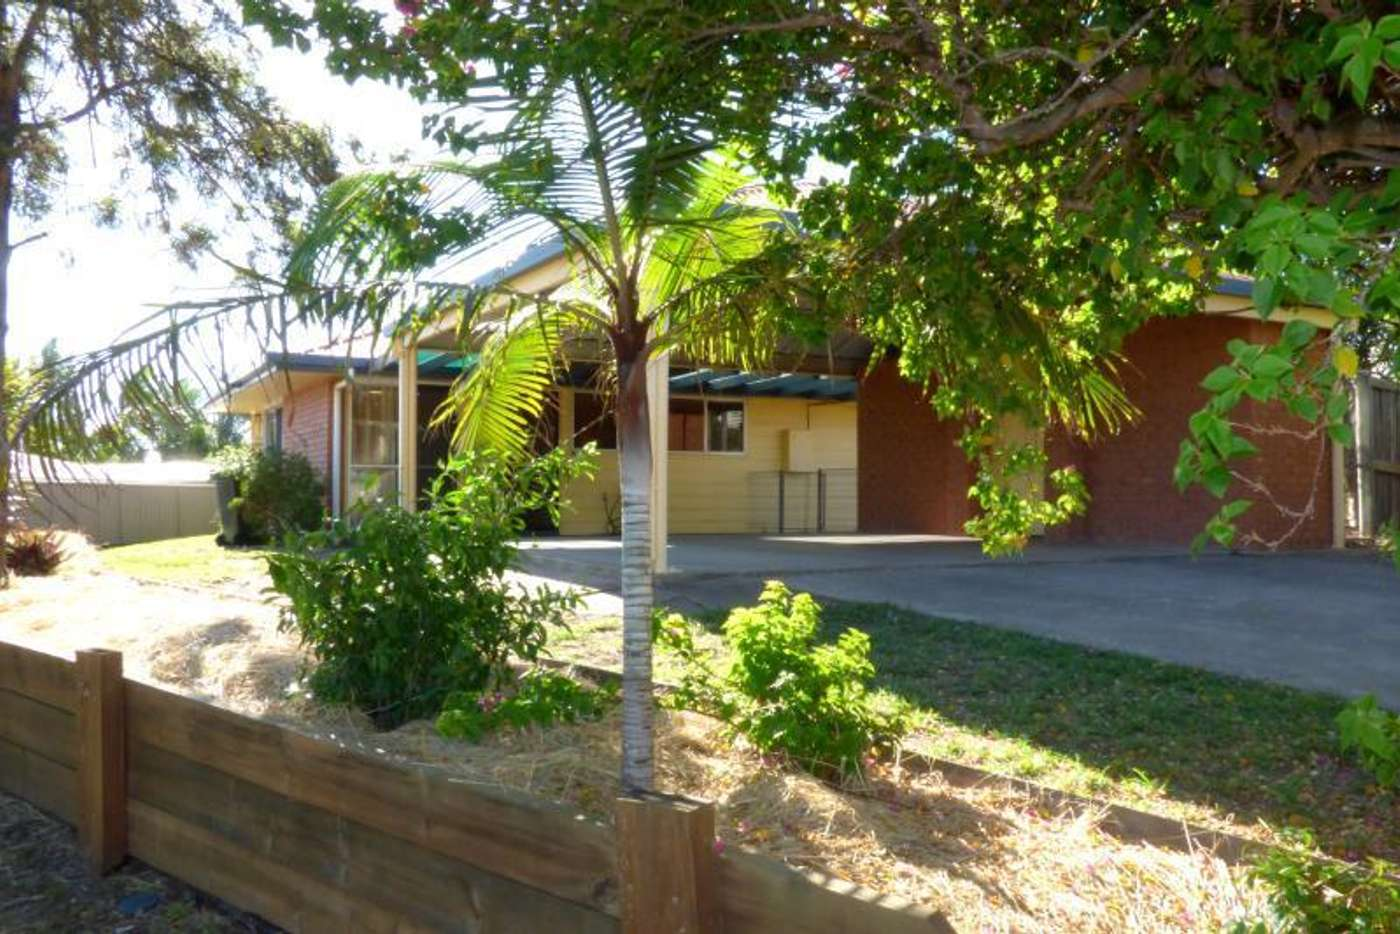 Main view of Homely house listing, 14 Paroz Crescent, Biloela QLD 4715